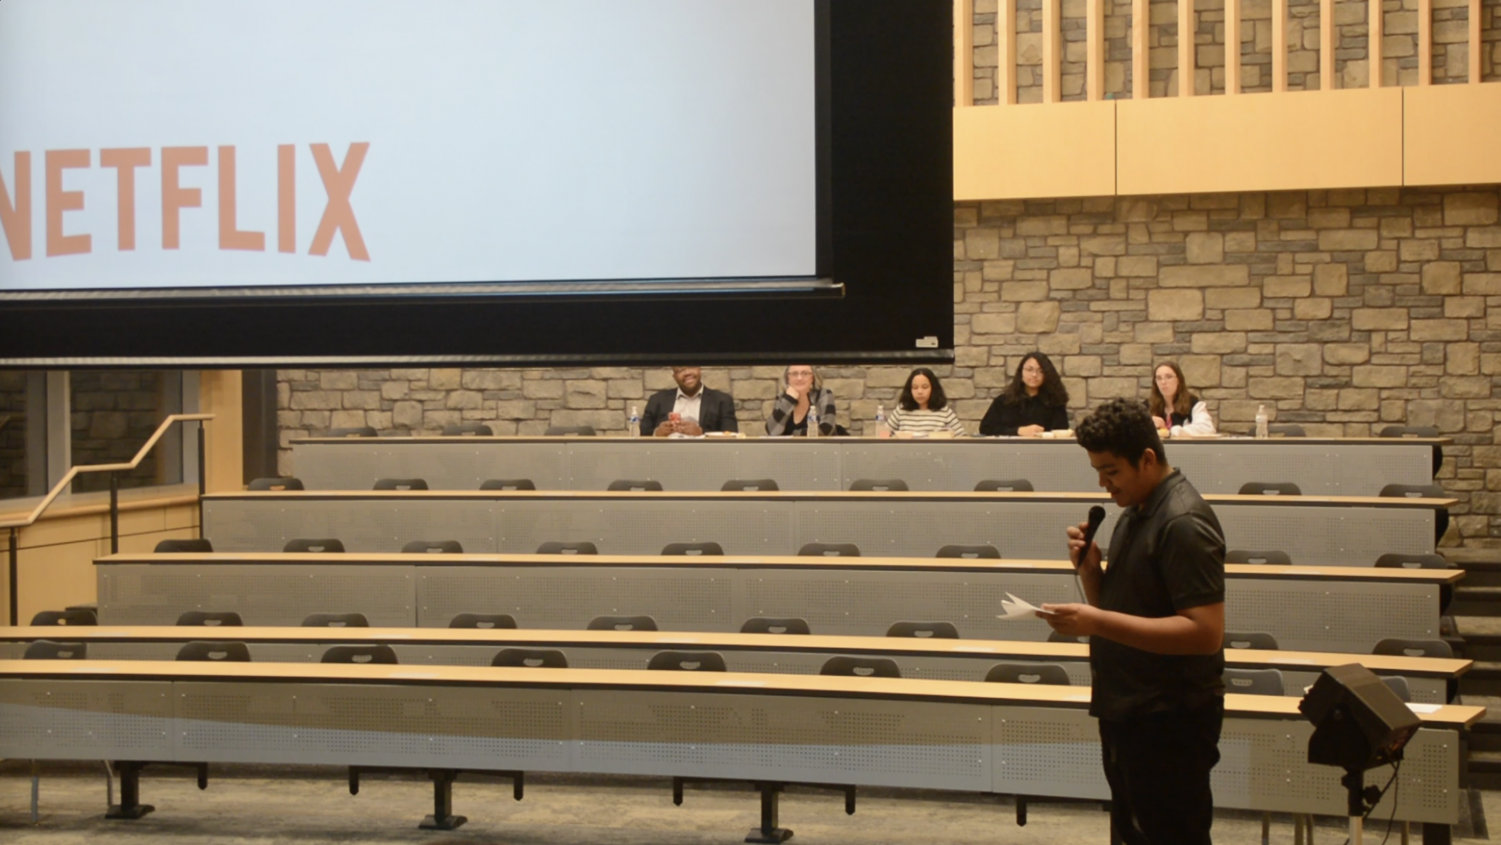 """Aidan Kennedy-Phillips, a sophomore at Delta High, introduces his Community Action Plan project. He chose to show the Netflix documentary '13th.' He opened by saying, """"I'm glad you could all be here tonight, this is such an important film about the mass incarceration crisis in the United States."""""""